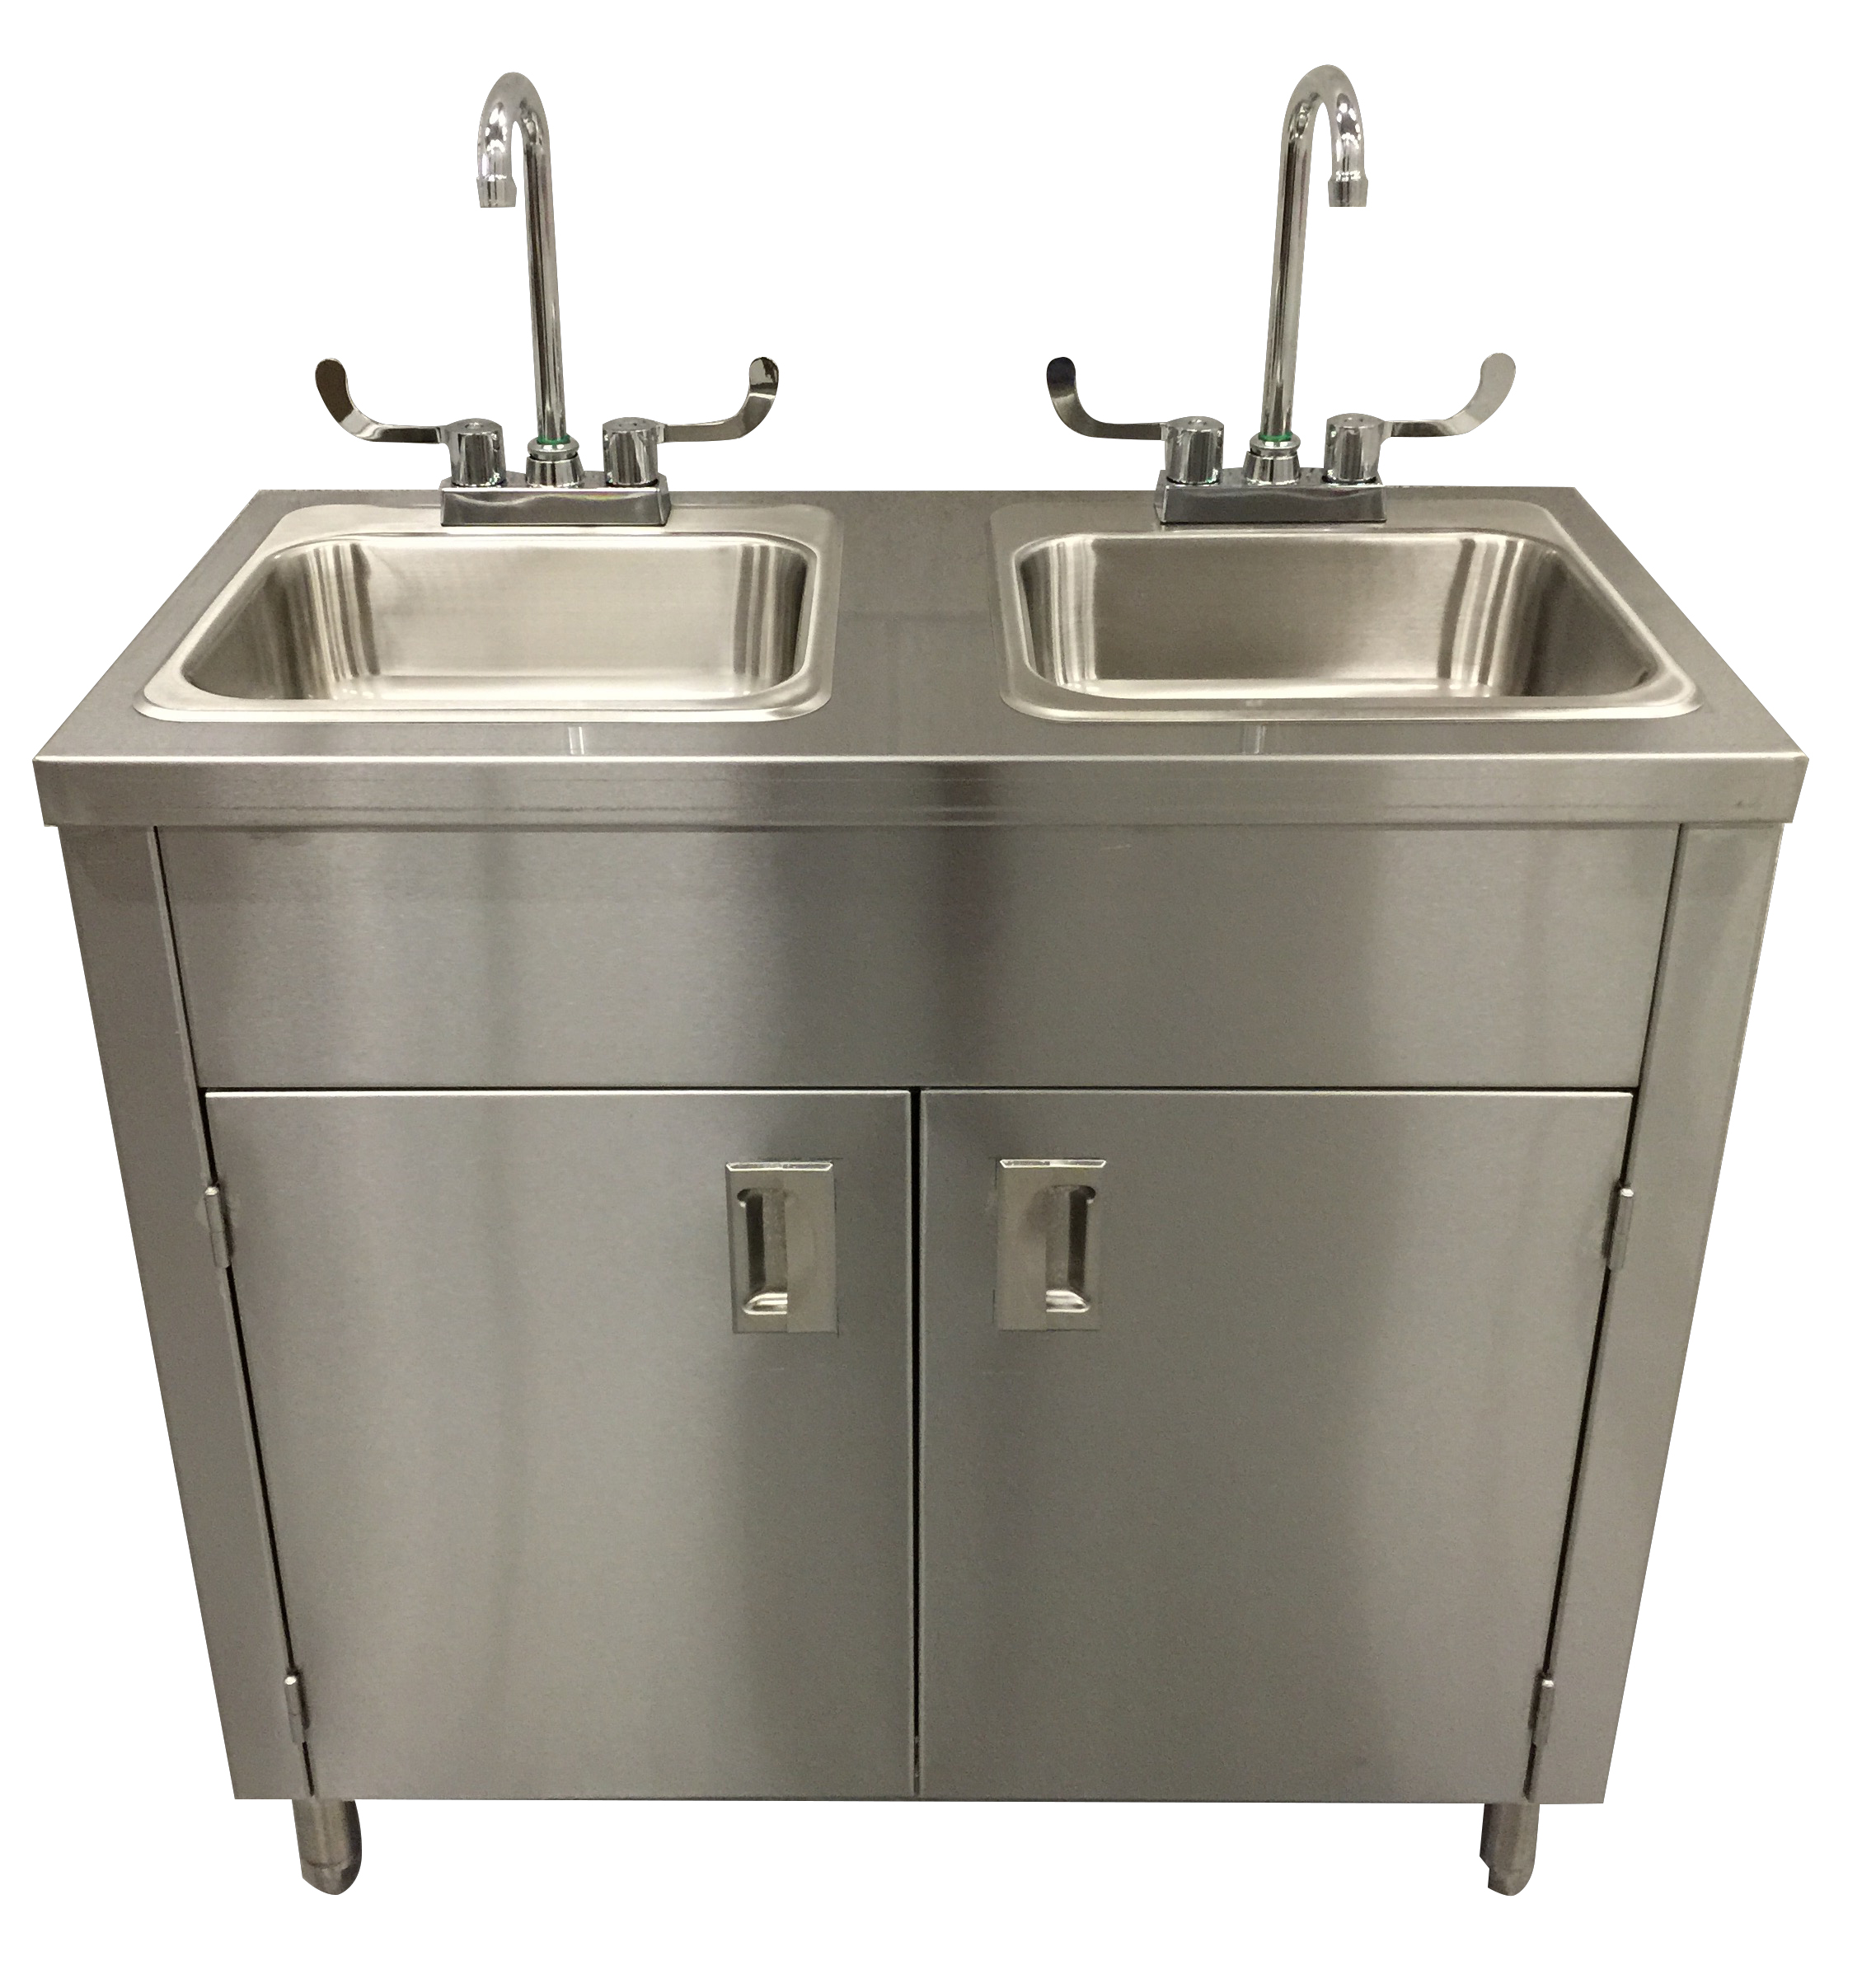 Portable Sink Stainless Steel Handwash Sink | Portable Sink Depot